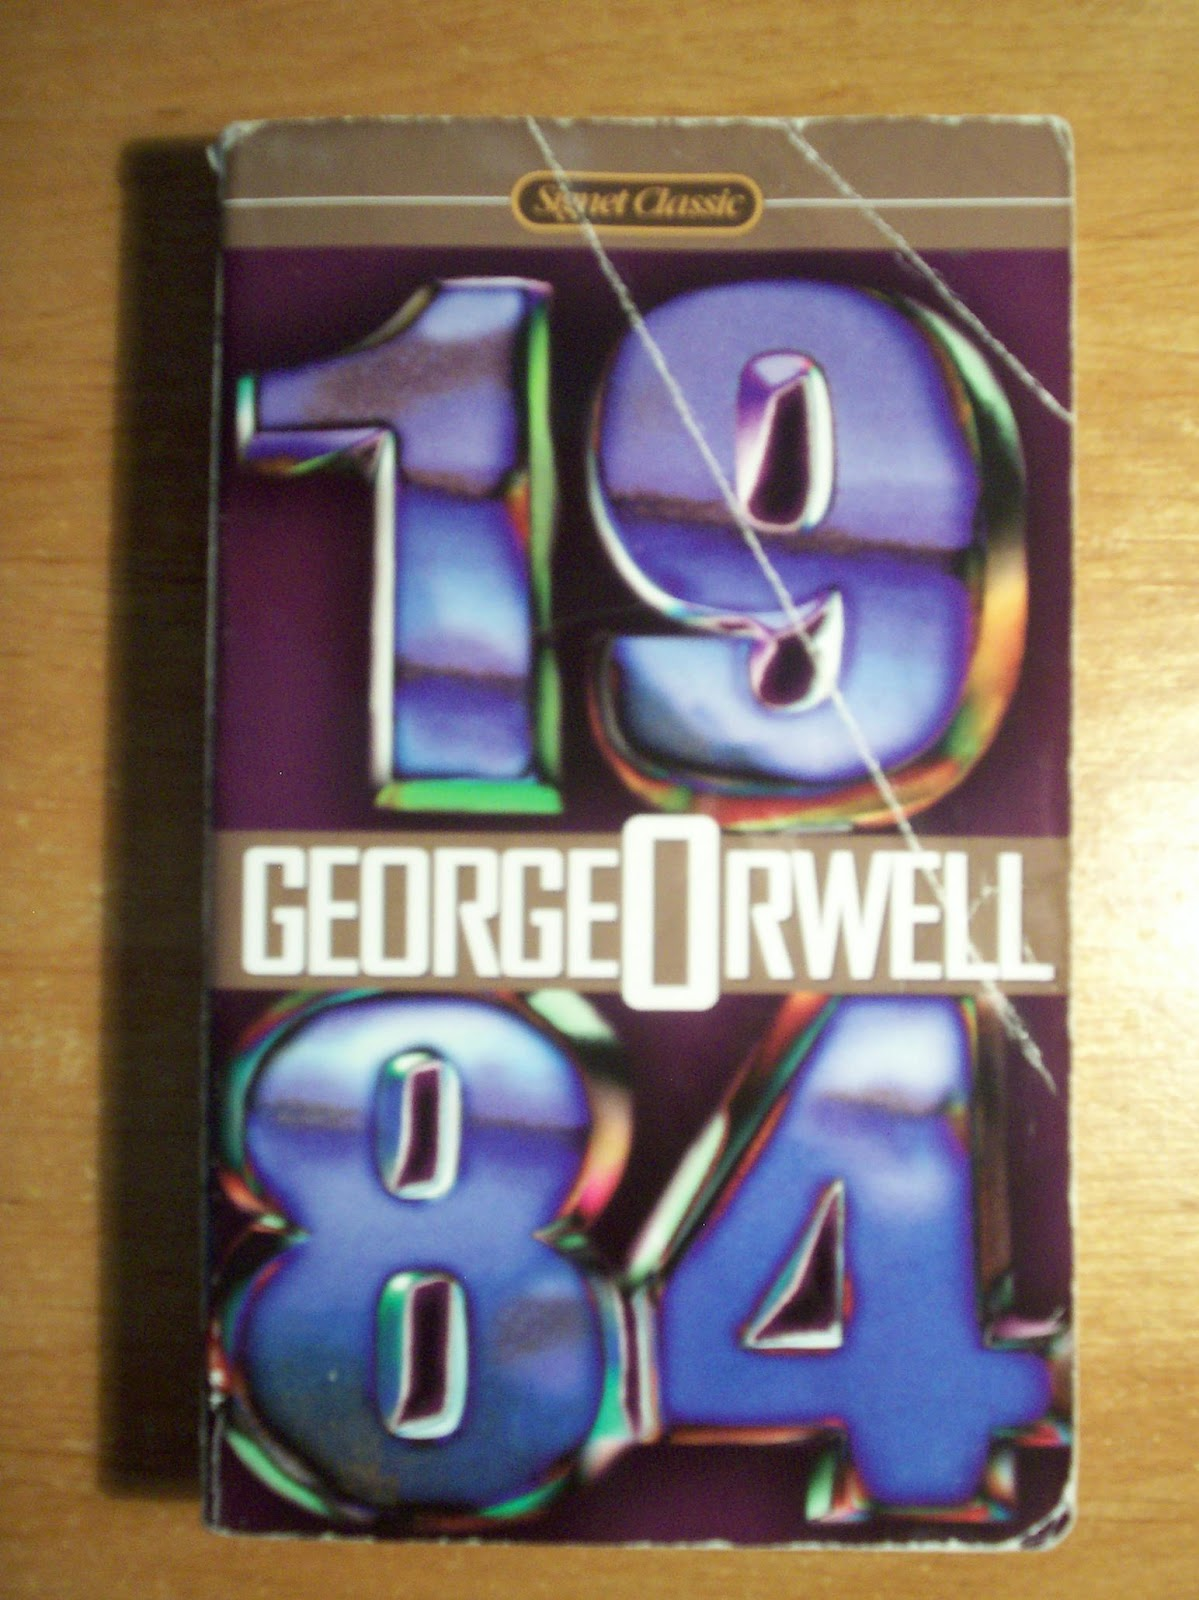 summer reading assignments 1984 by george orwell Mt juliet christian academy summer reading grade 10 students entering the 10th grade should read 1984 by george orwell summer reading assignment.